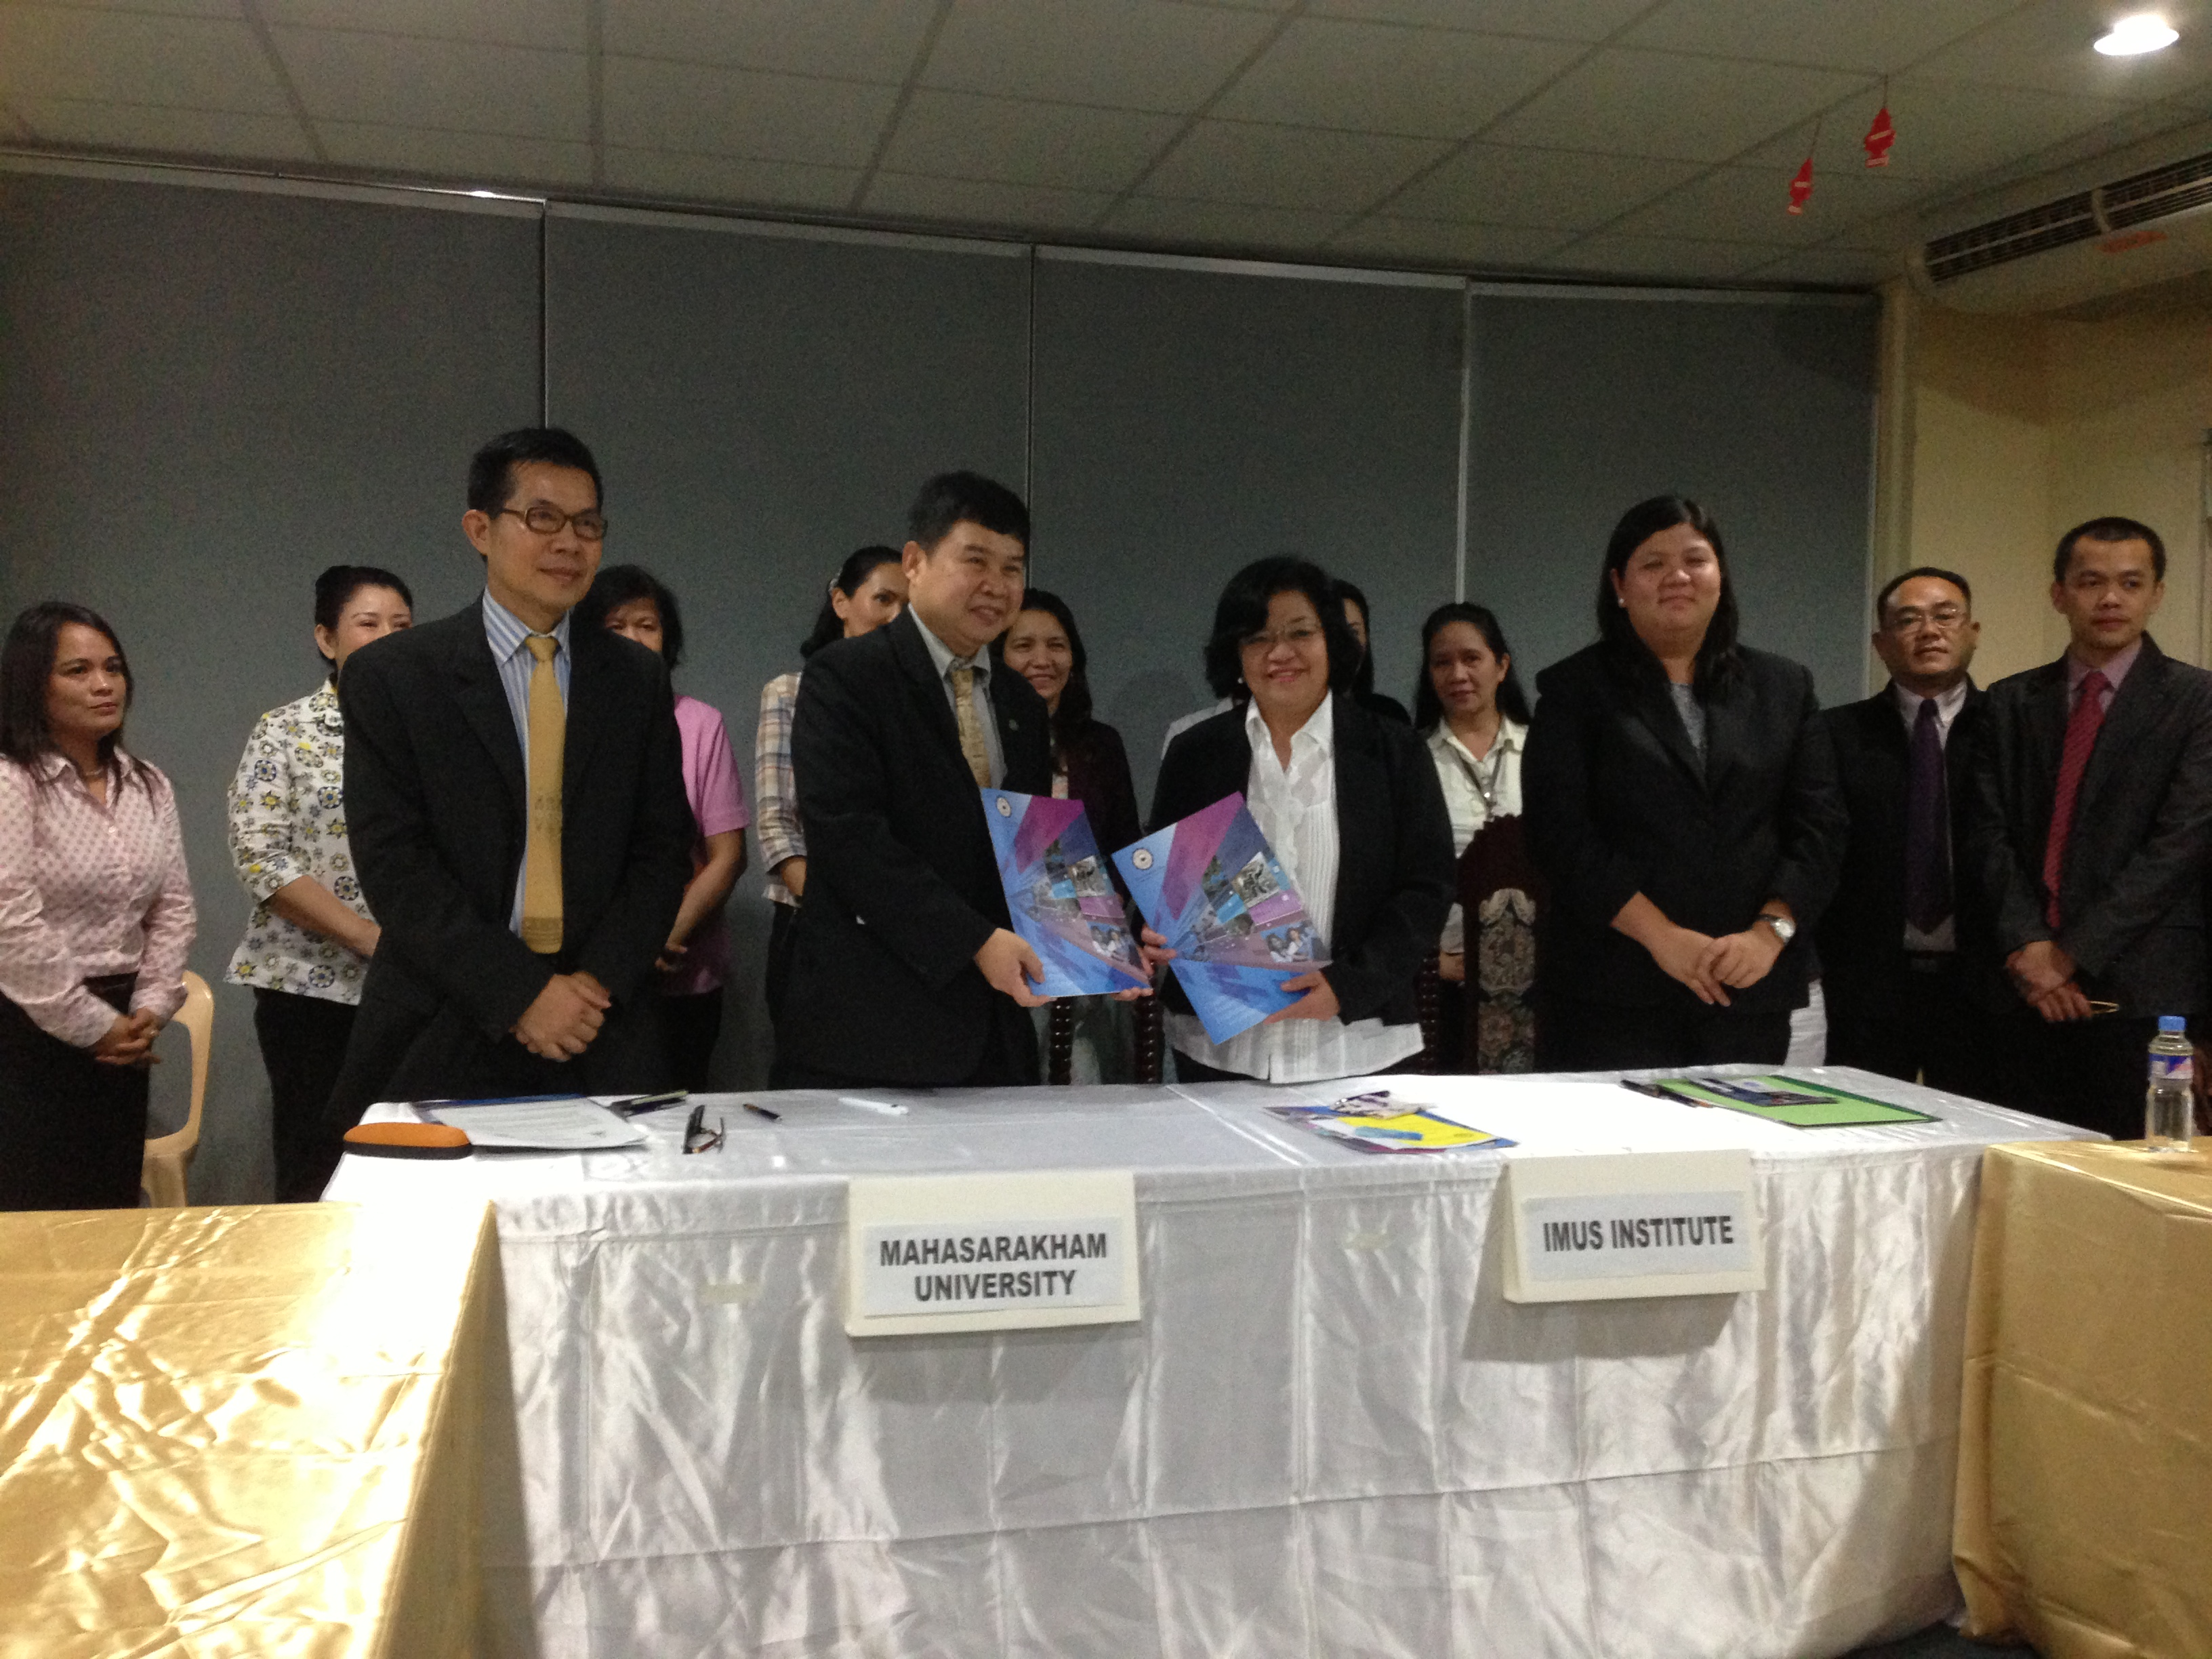 MSU - IMUS Institute, Philippines MOU Signing Ceremony